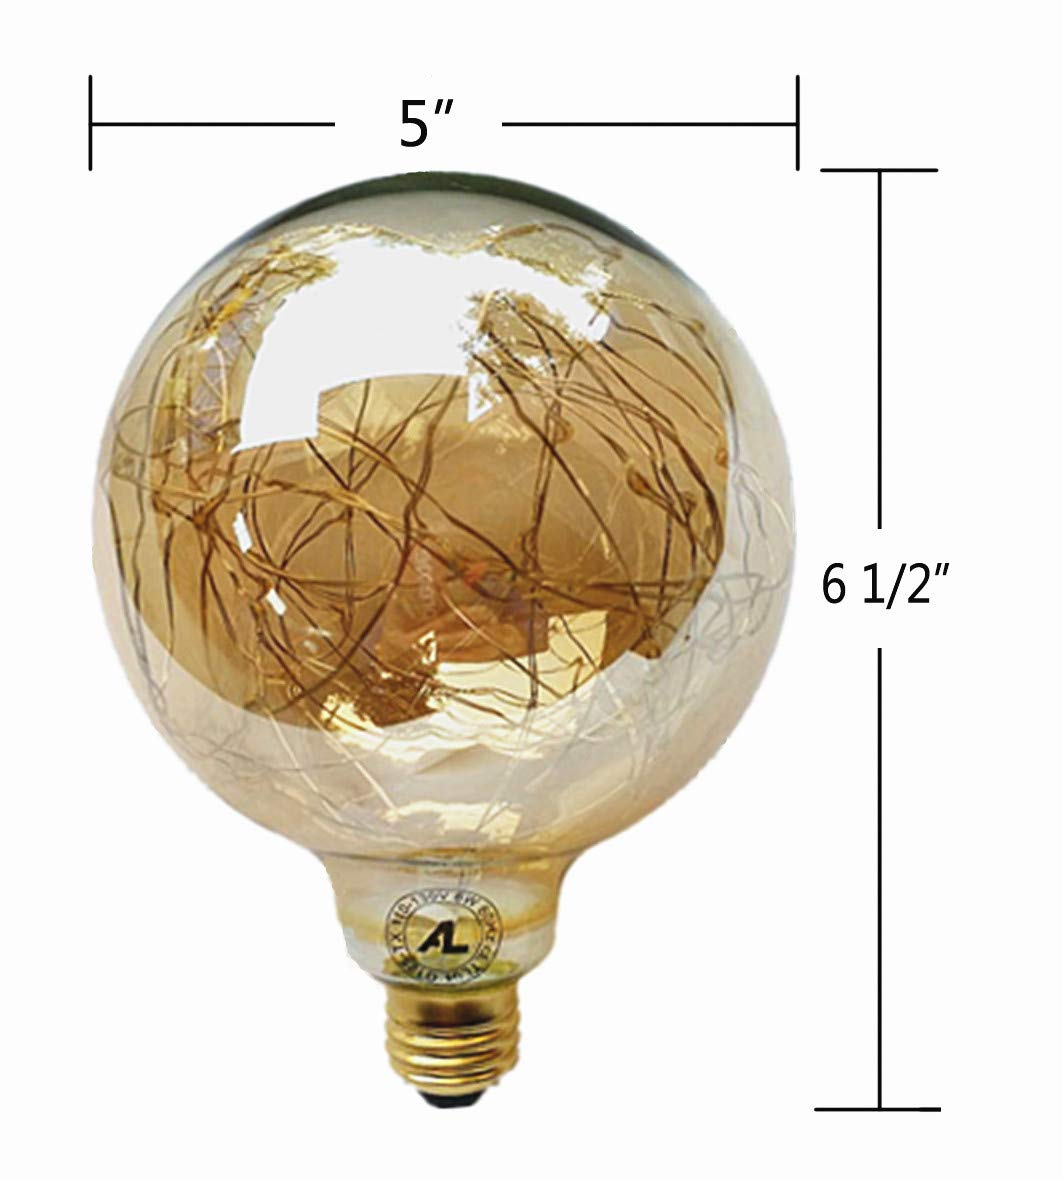 LED Globe Fairy Light Bulb Lighting, Warm Yellow Dimmable 120V/6W Gold Glass E26 Standard Edison Lamp Starry Decorative 3000K Energy-Saving Lights for Home, Bar, Yard